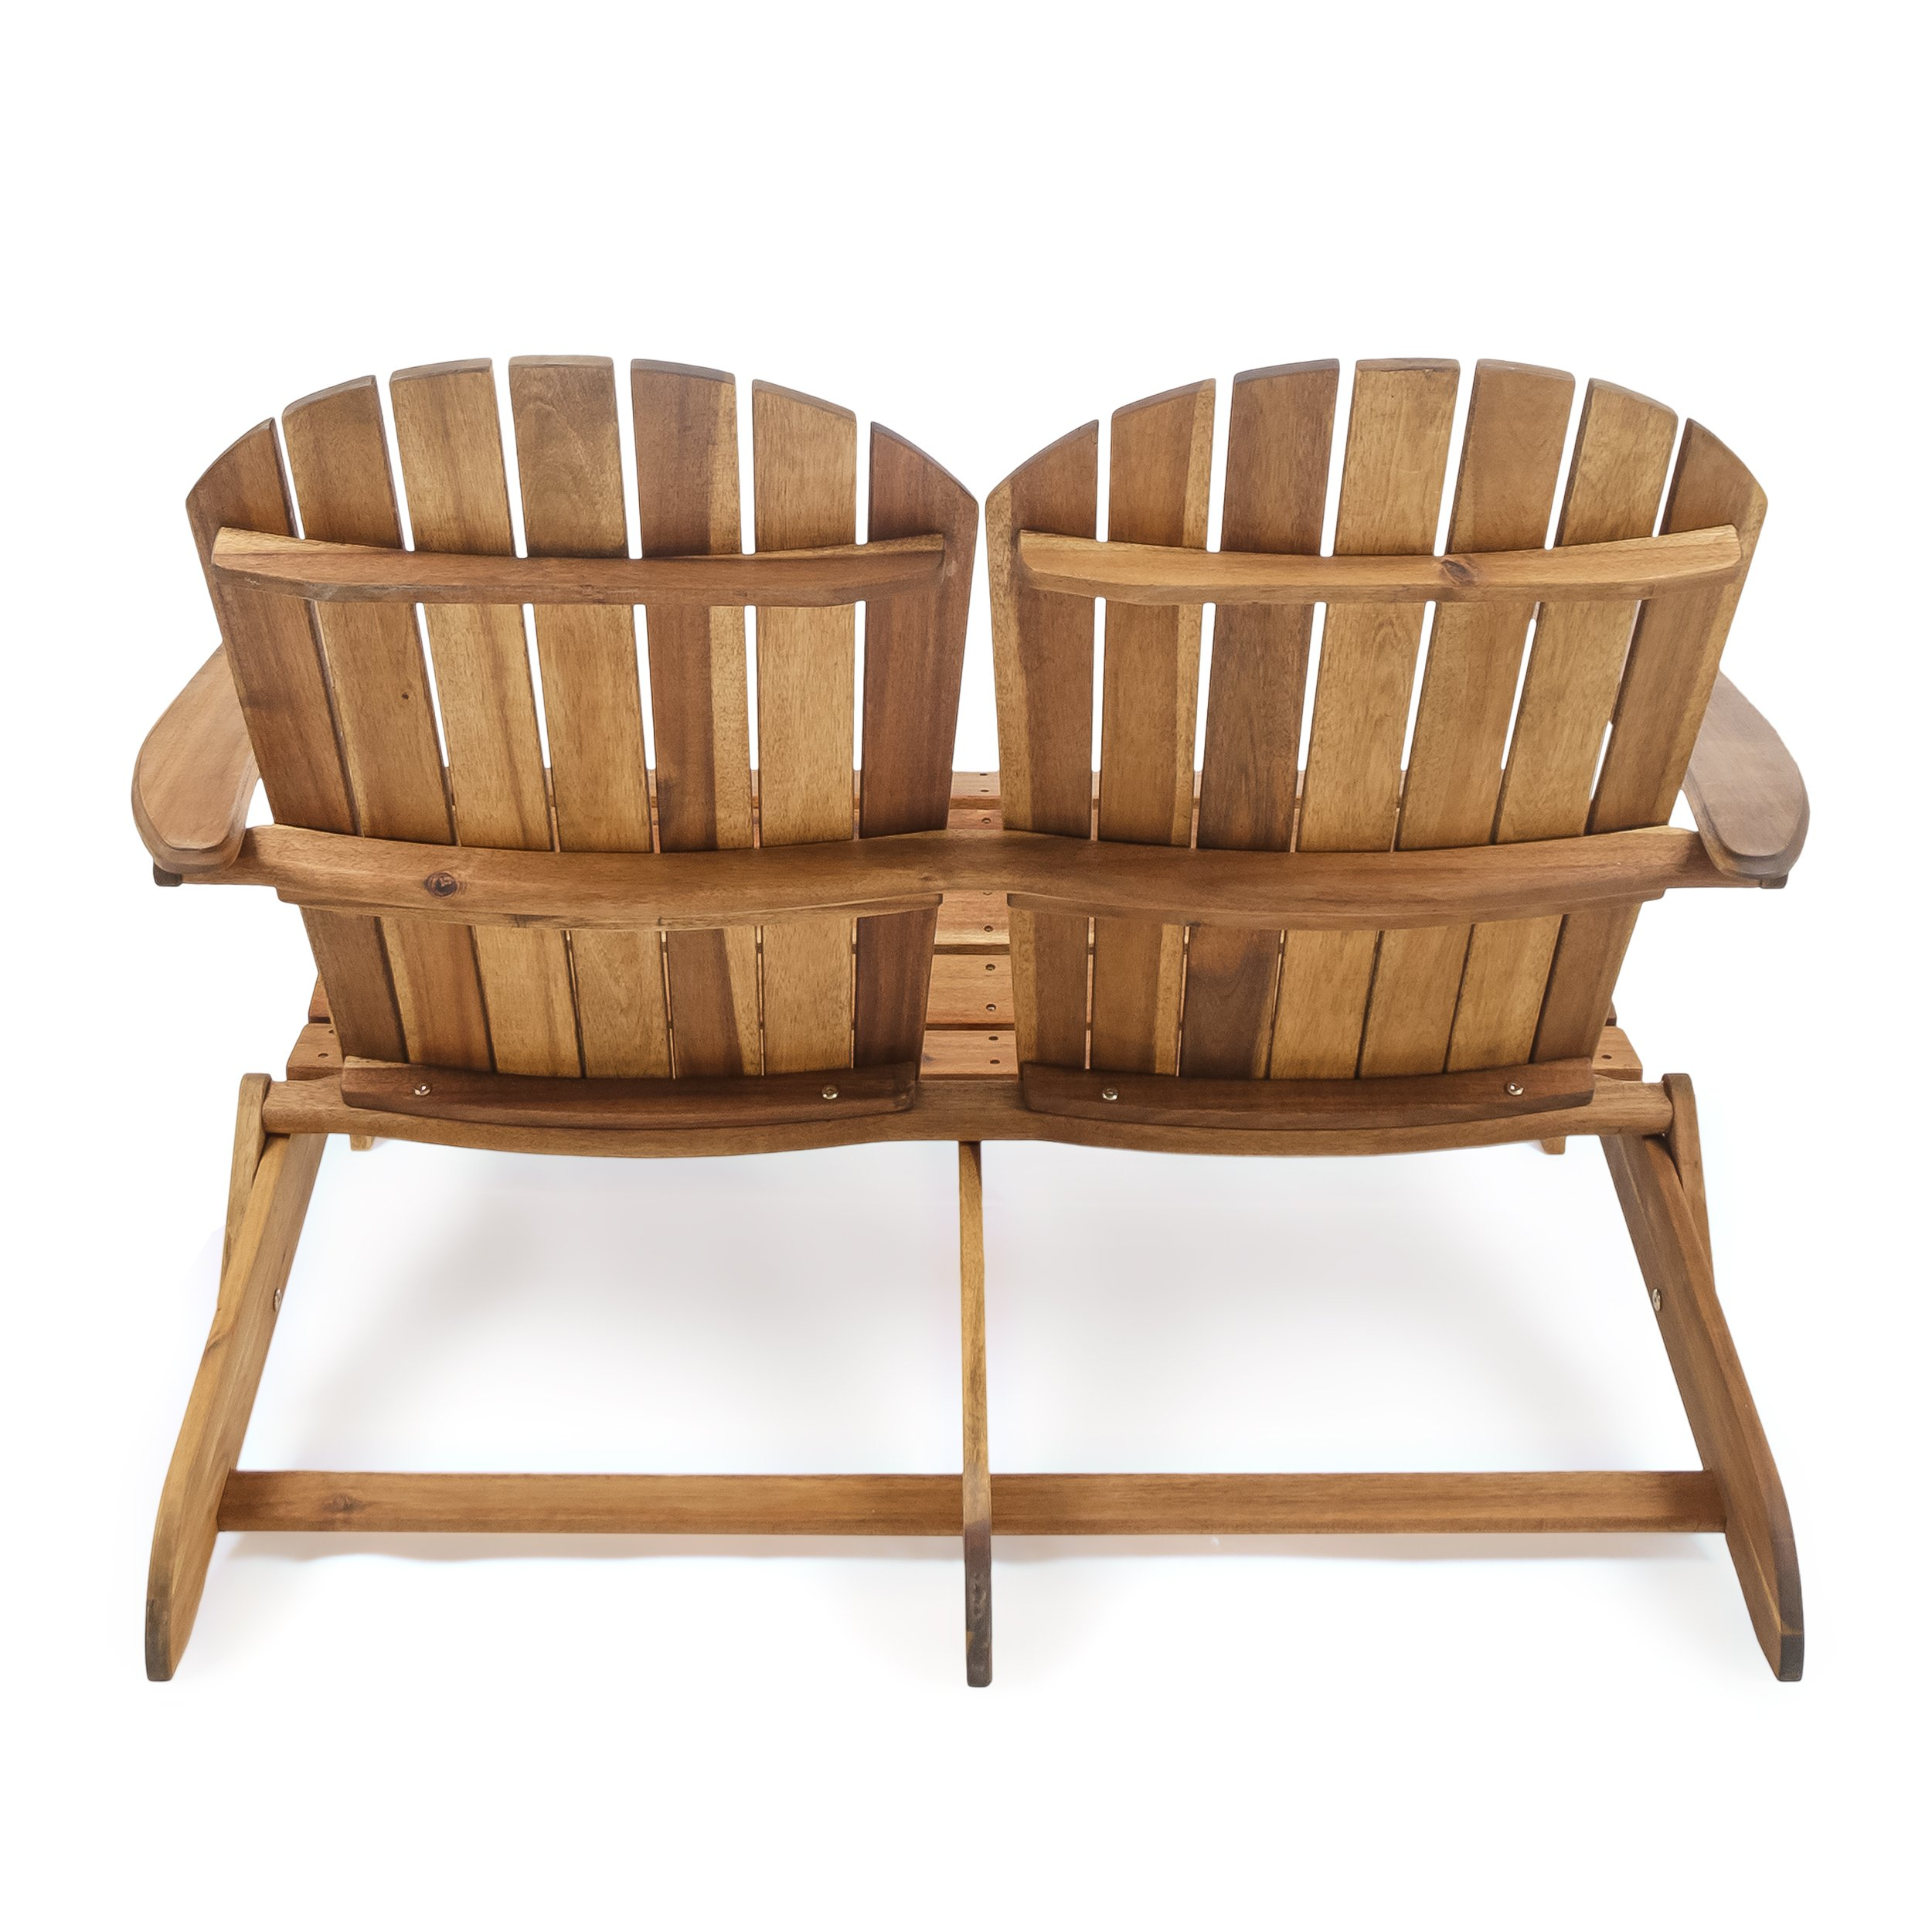 Great Deal Furniture Muriel Outdoor Natural Finish Acacia Wood Adirondack Loveseat by Great Deal Furniture (Image #4)